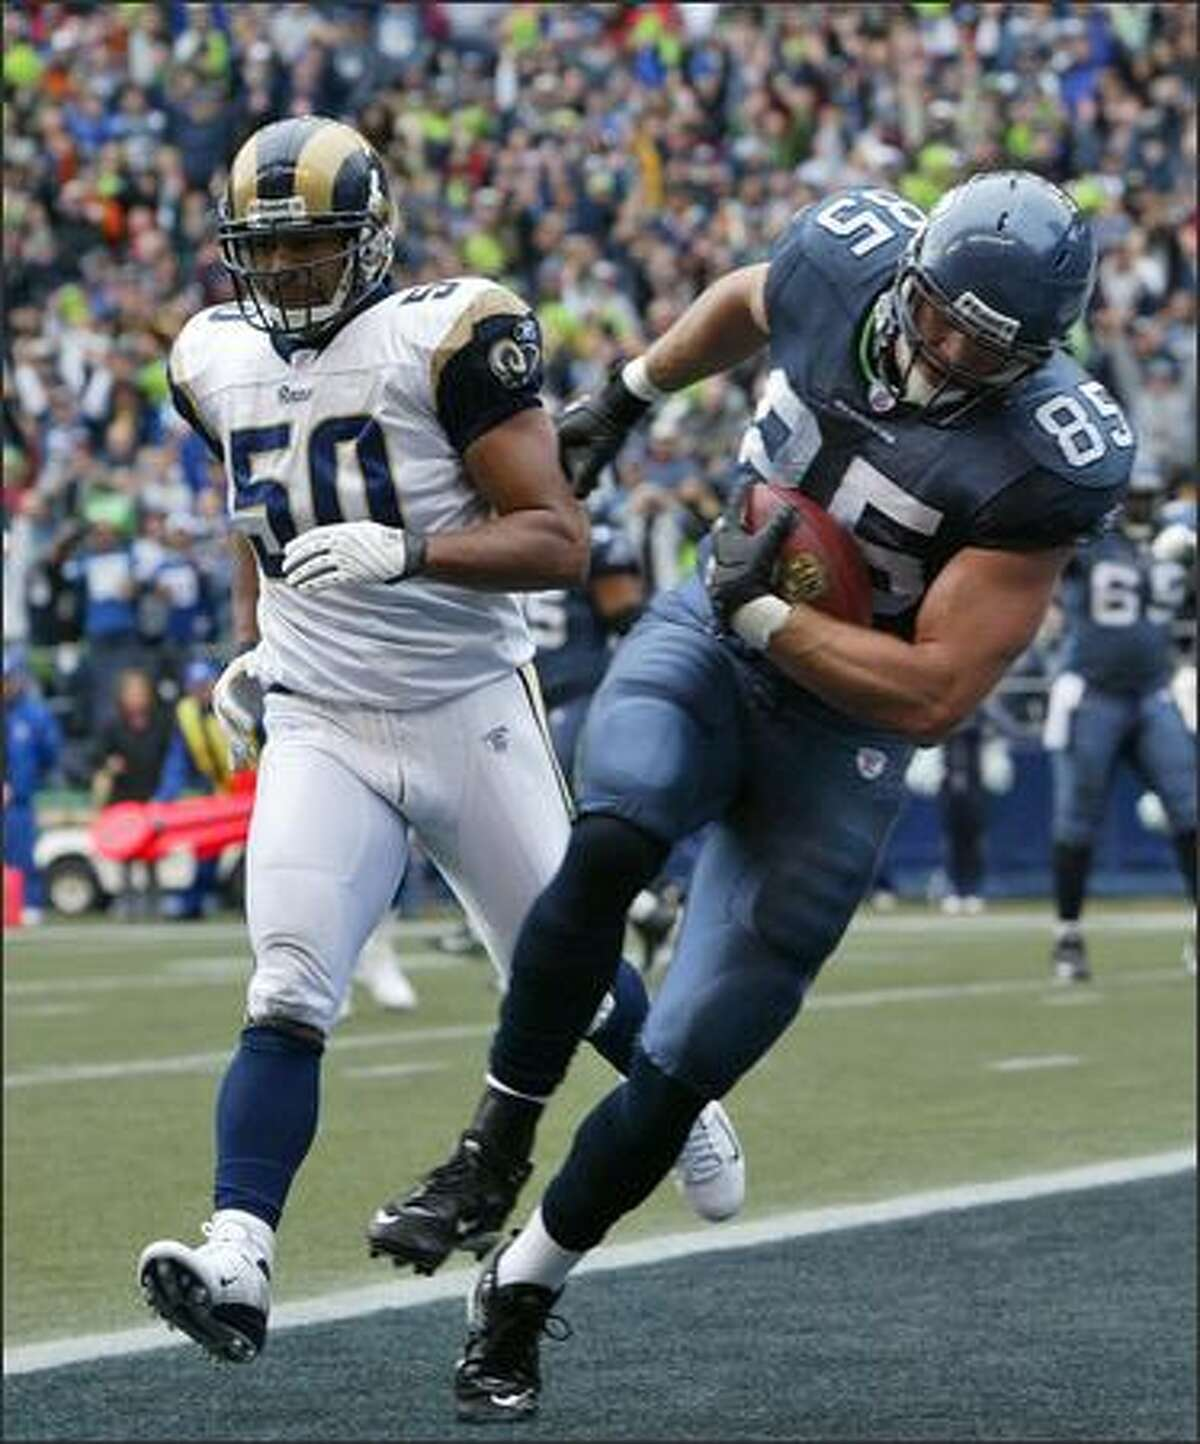 Seattle Seahawks' Will Heller beats St. Louis Rams' Pisa Tinoisamoa to the endzone for the Seahawks first touchdown during the 1st quarter.